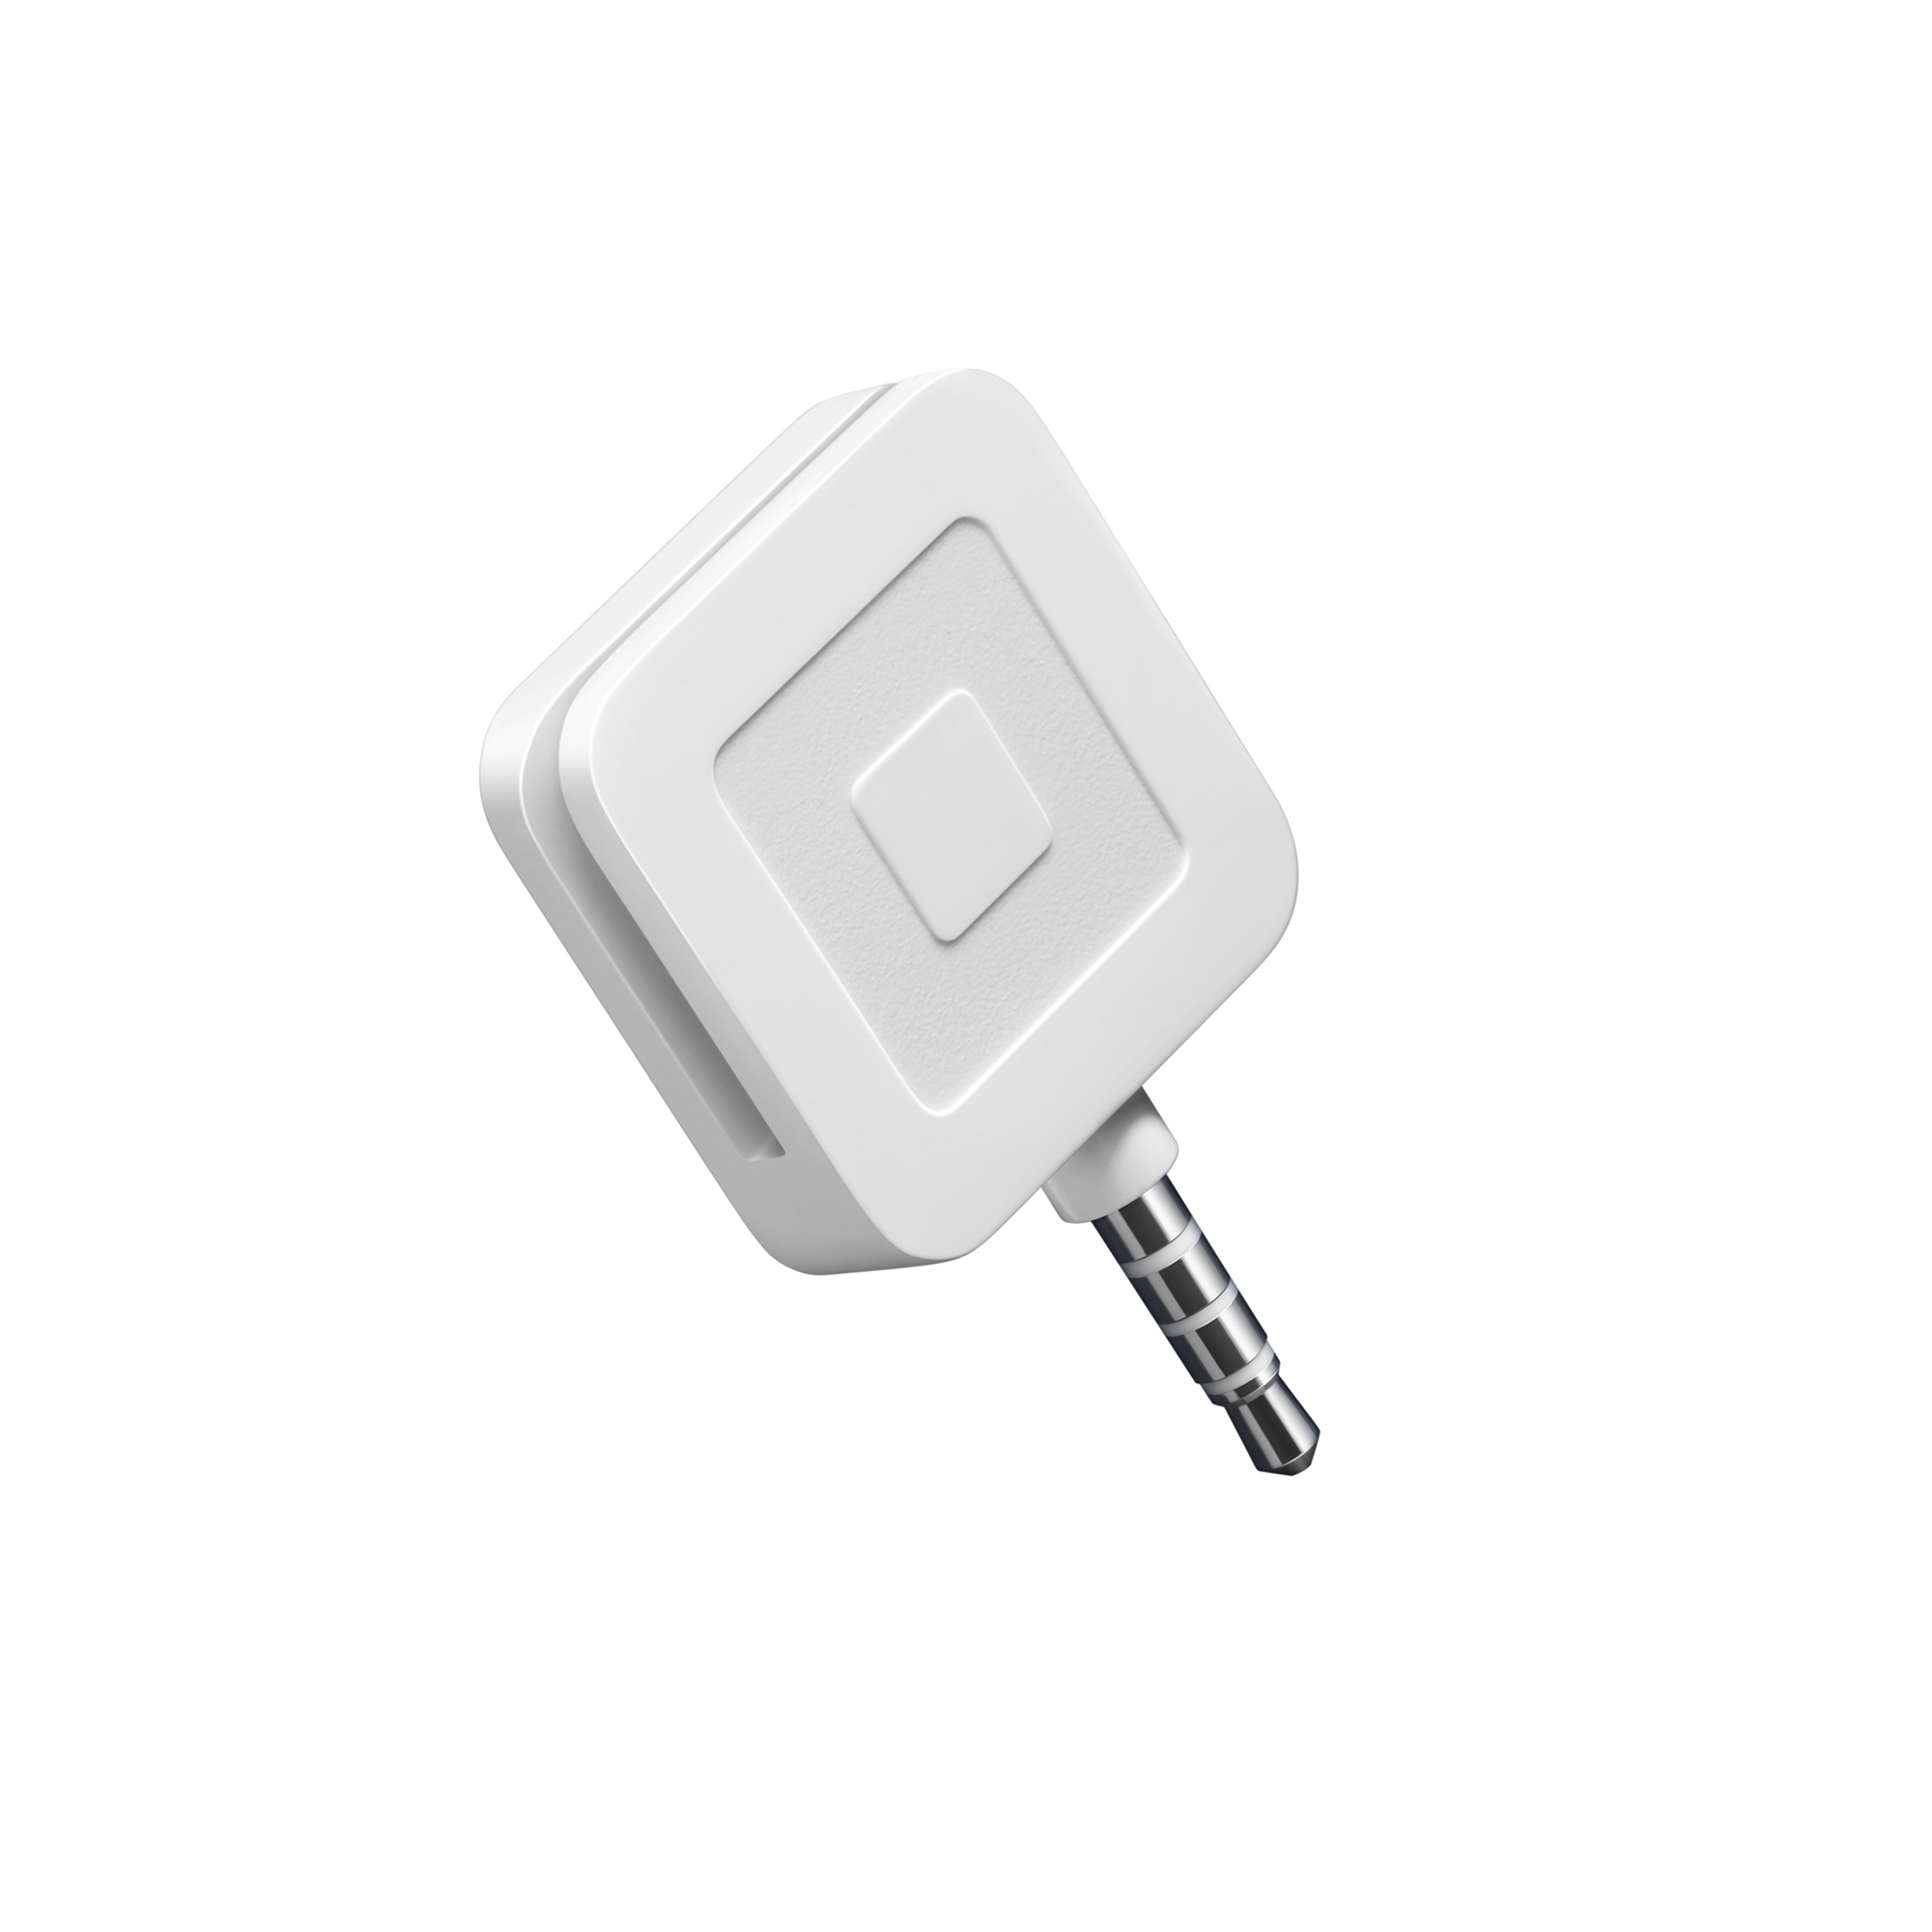 Square Credit Card Magstripe Reader